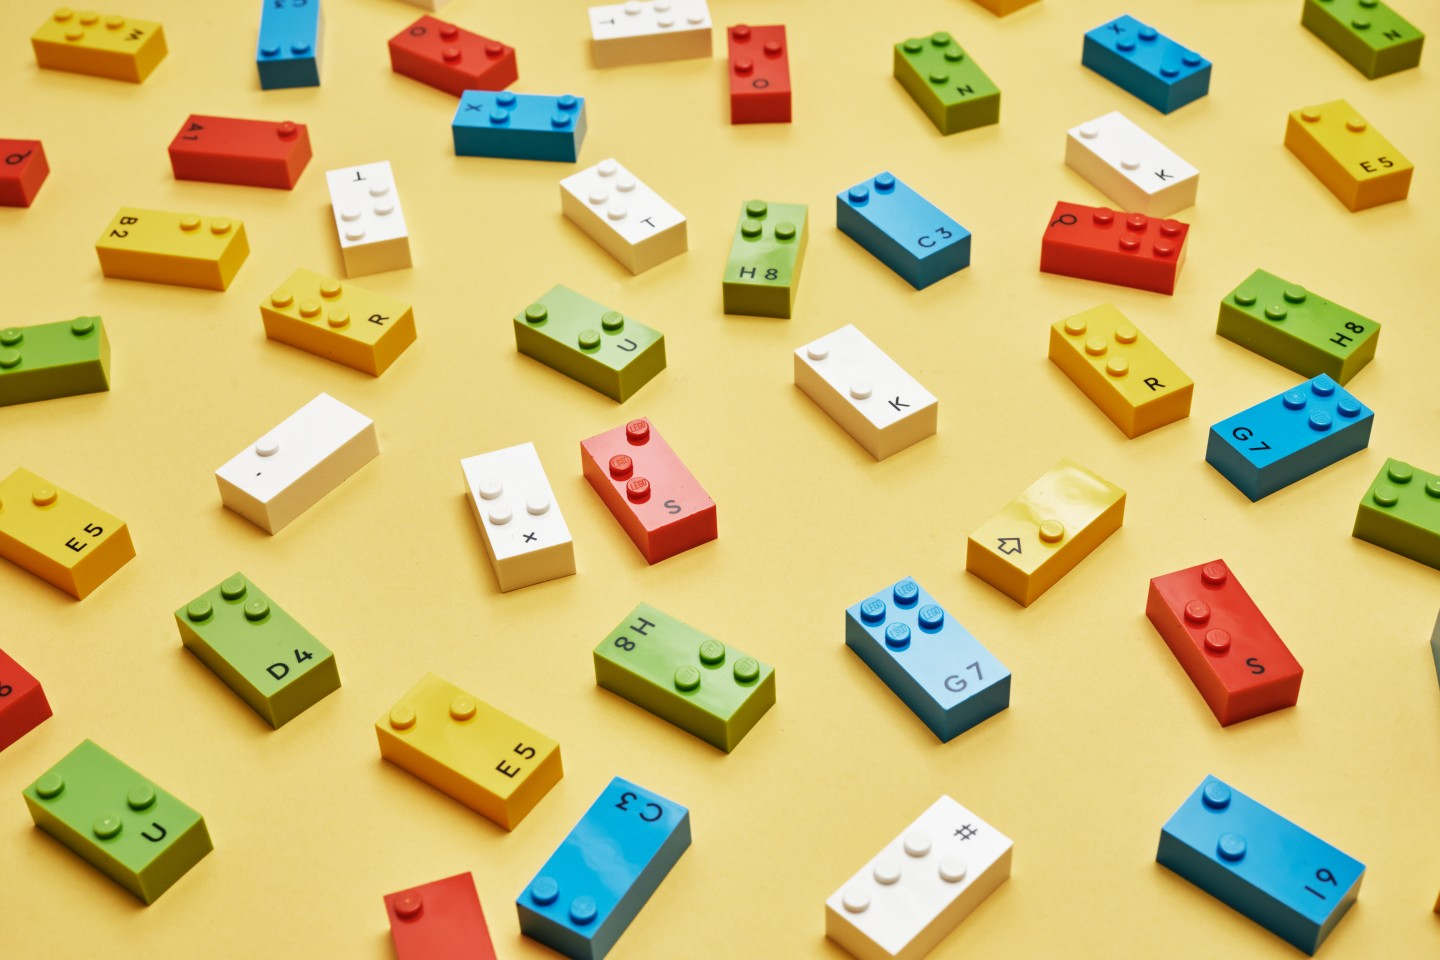 LEGO Braille Bricks is a collaboration between the Lego Foundation/Lego Group and official partners in the blind community. Each brick contains a printed letter and a Braille letter to promote interaction between sighted and blind people. The project is shortlisted in the Product category